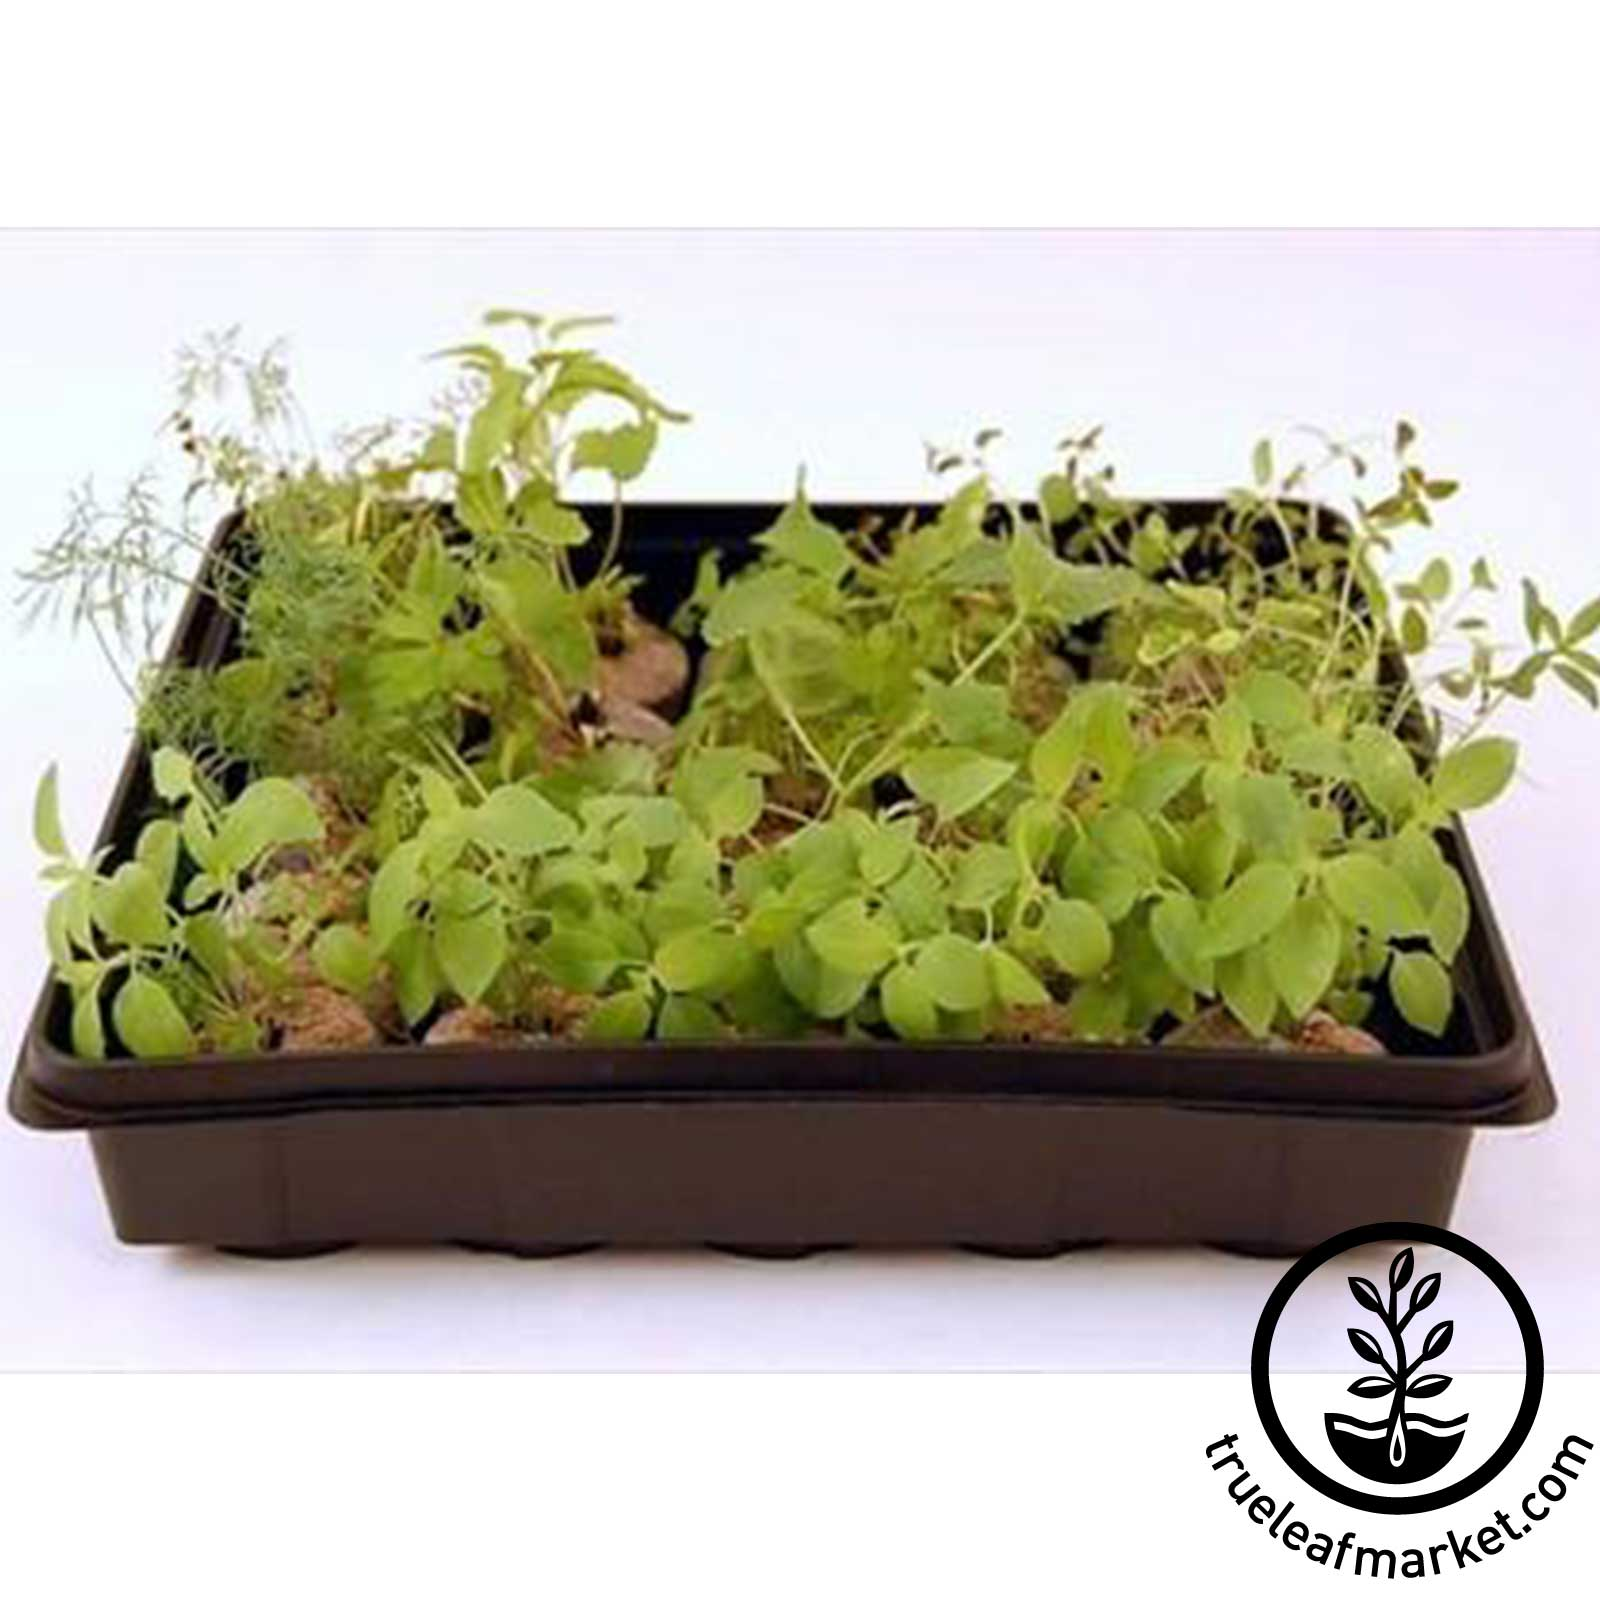 Small Plant Grow Tray with Wheatgrass